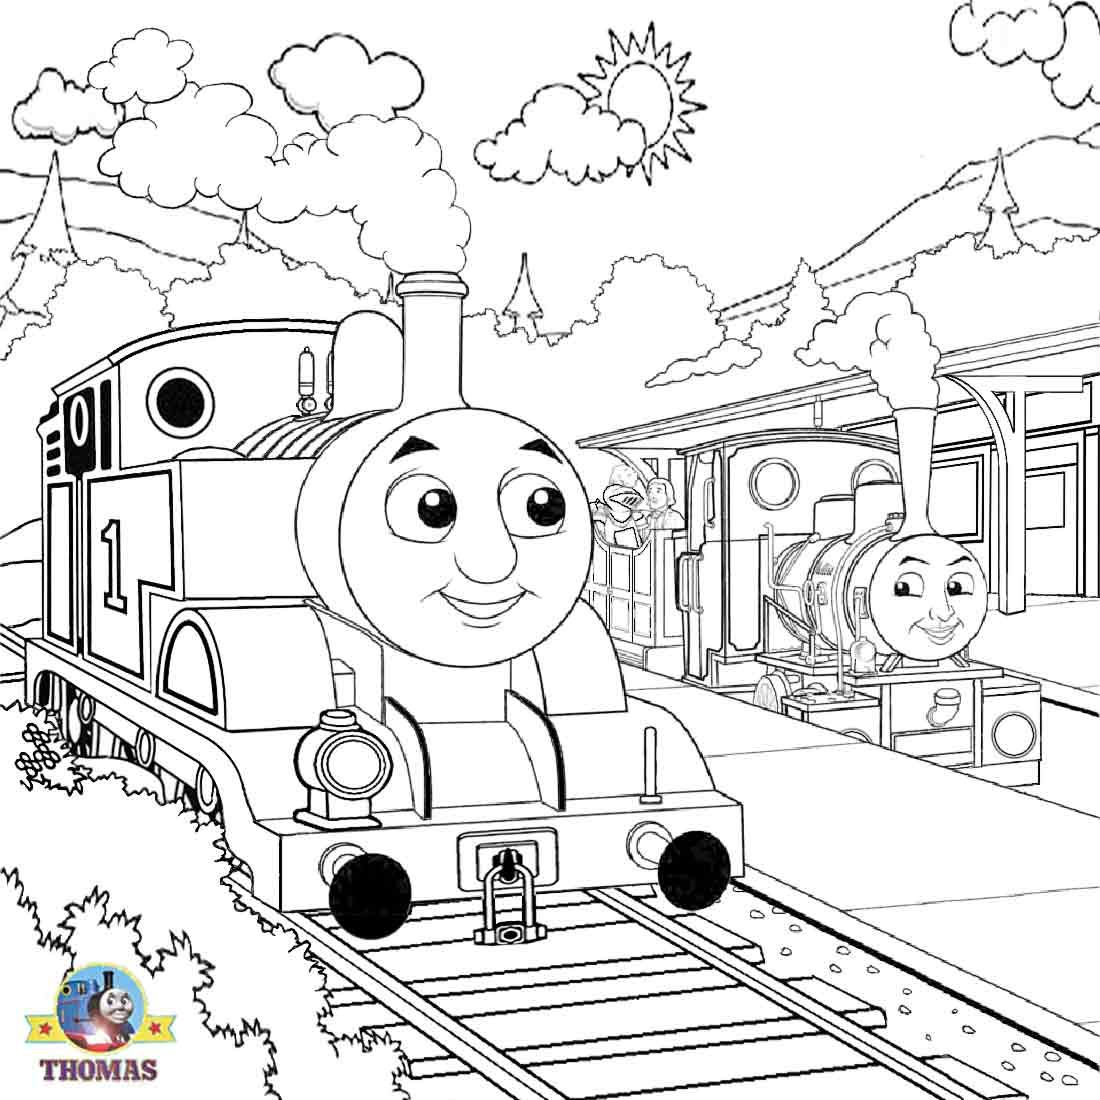 Uncategorized Percy Coloring Pages thomas percy coloring pages murderthestout free printable pictures to color kids drawing ideas